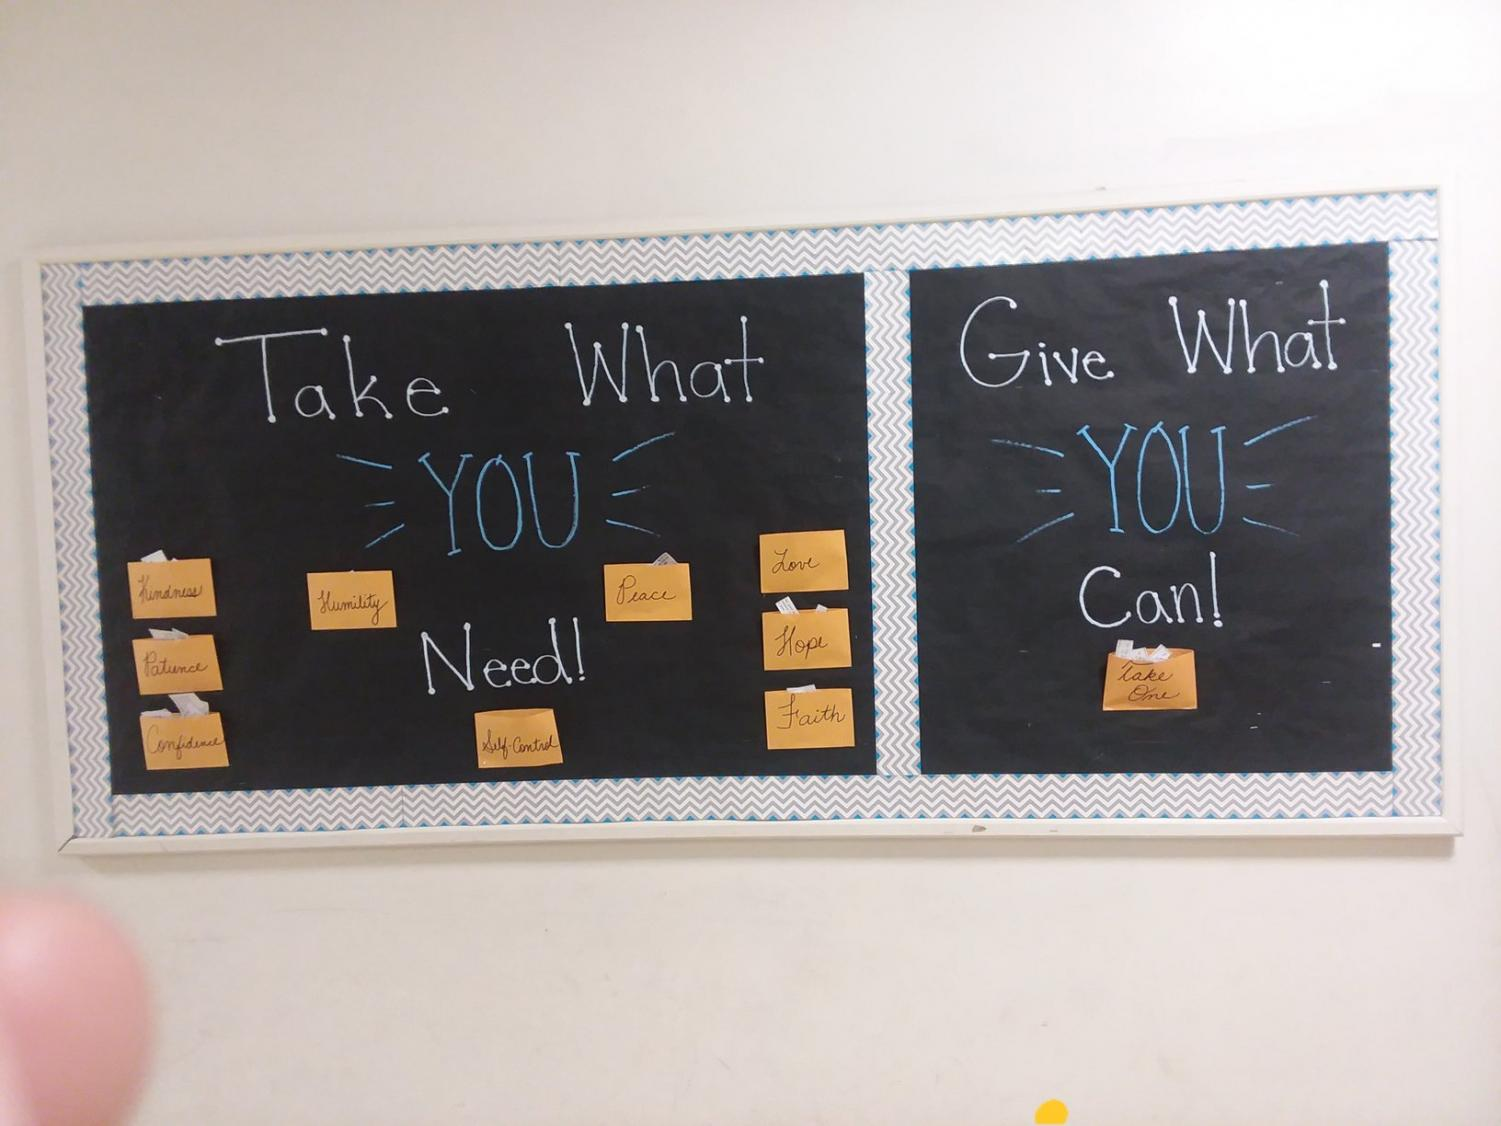 The new bulletin board in the main hallway of school is divided into two parts. On one side, students are asked to take what they need, and on the other, to give what they can.